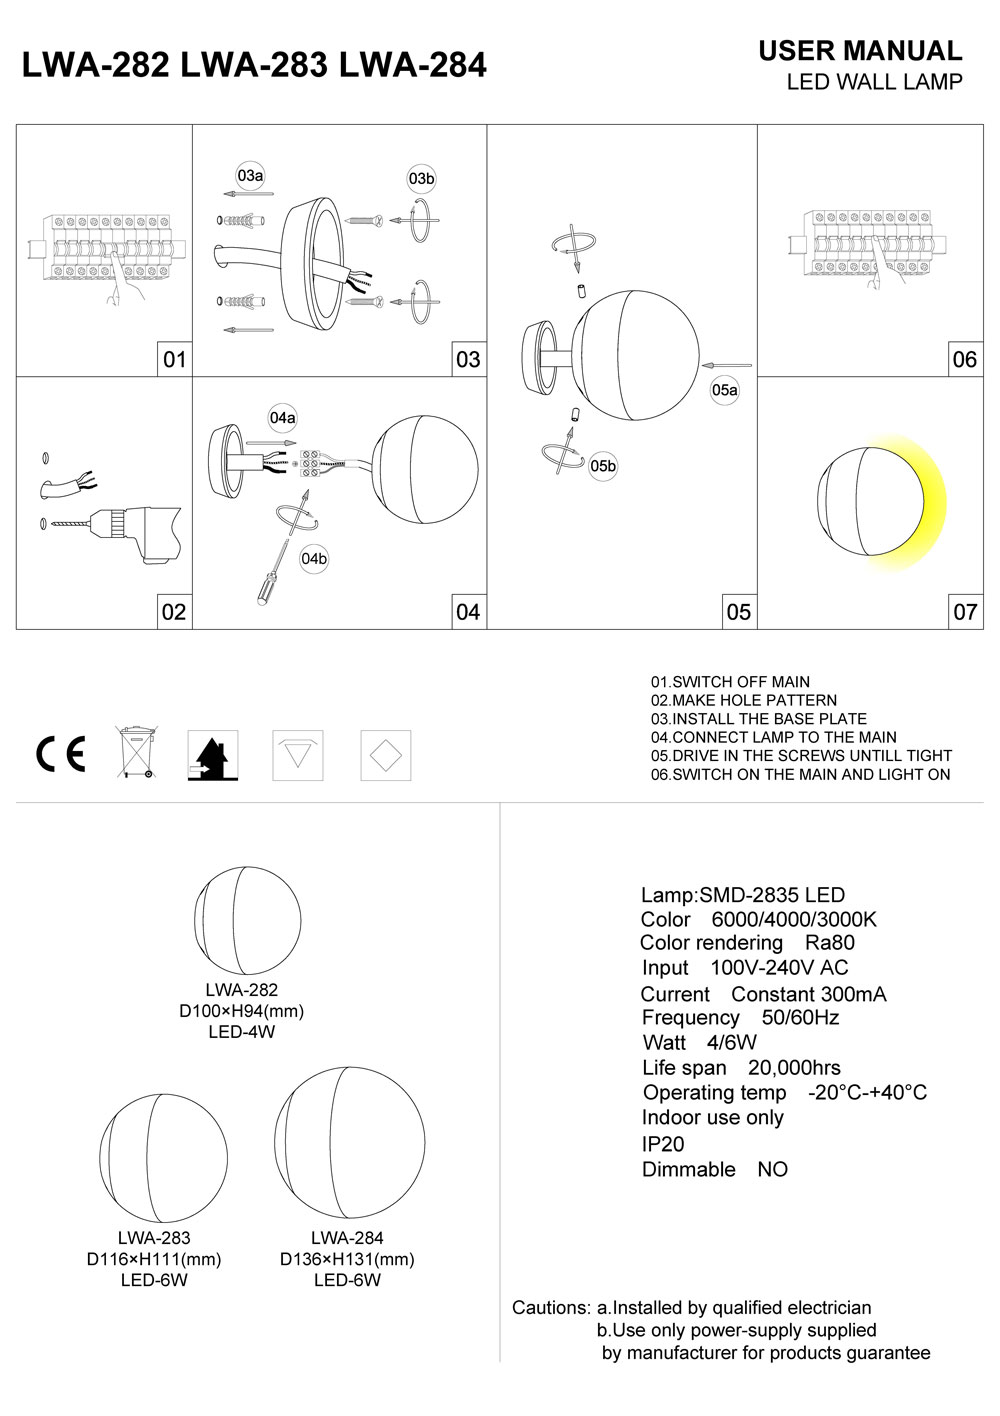 LWA284 LED wall light installation guide